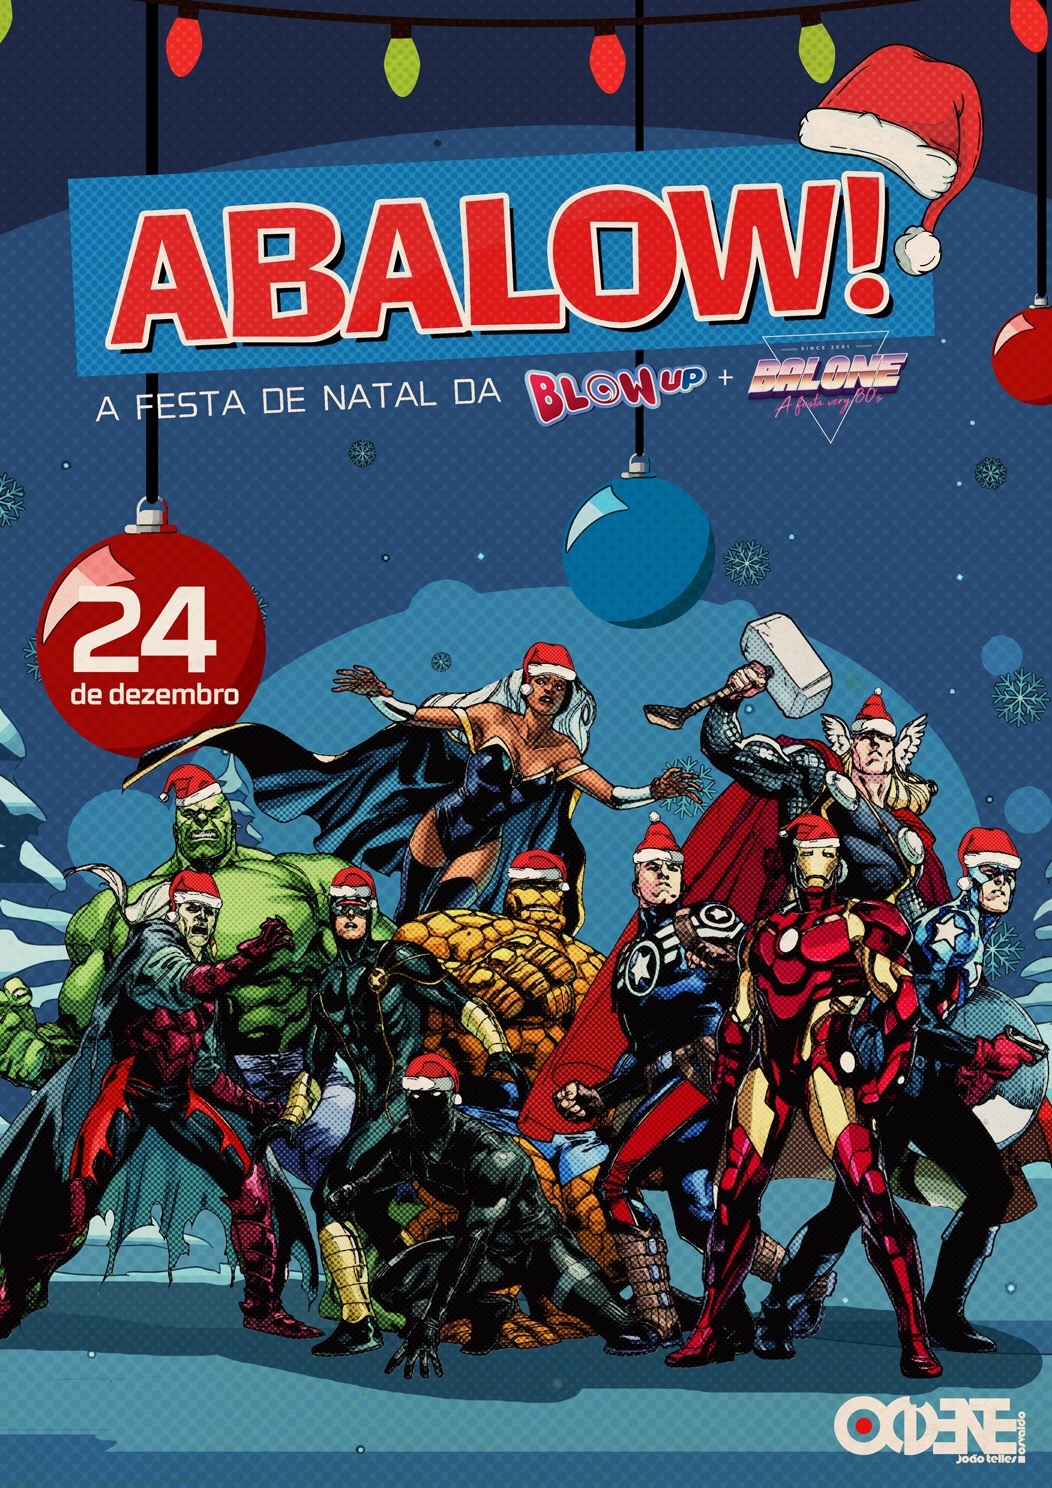 ABALOW! A Festa de natal da BLOW-UP + BALONÊ